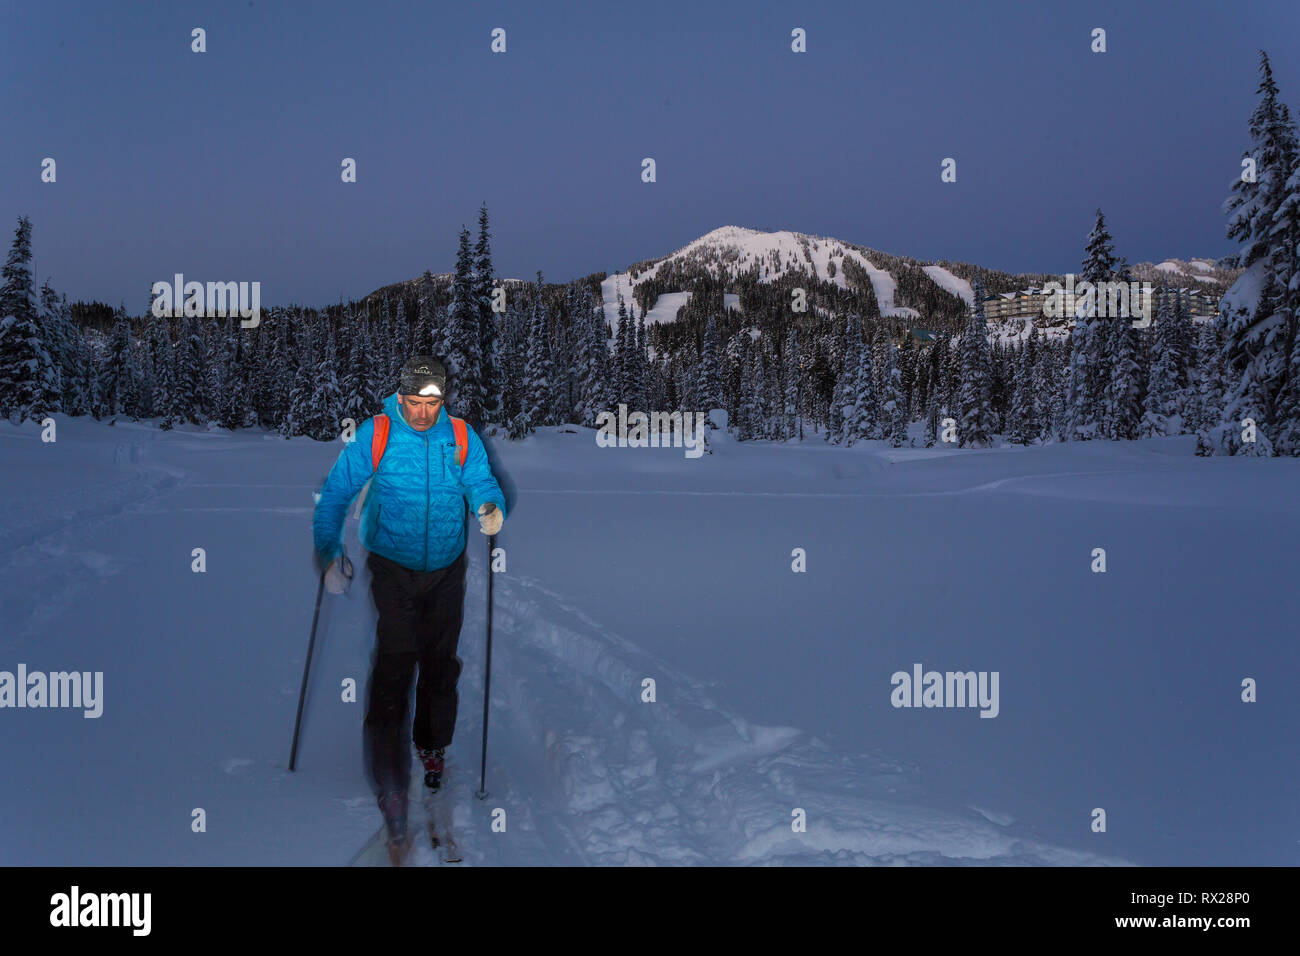 A back country skier works his way through Paradise Meadows at night, Mt. Washington in the background.  The Comox Valley, Vancouver Island, British C - Stock Image